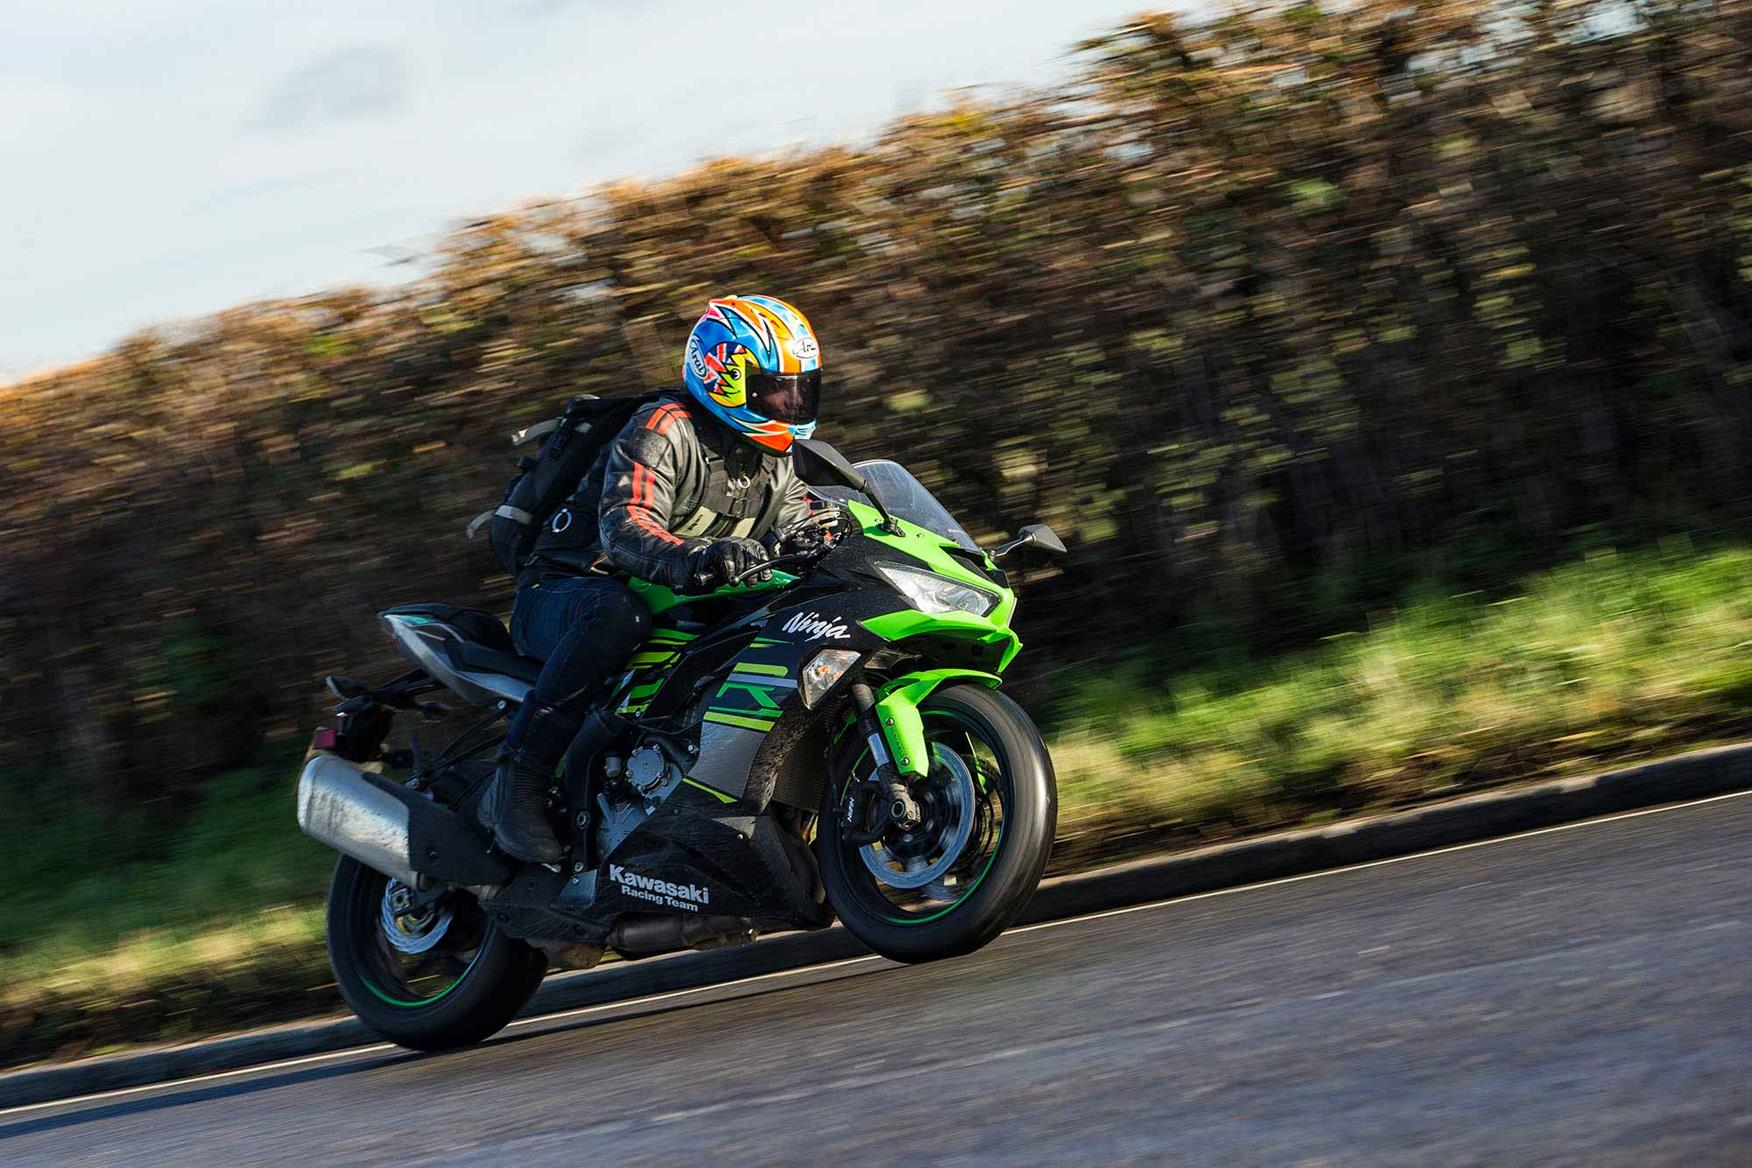 Cornering on the Kawasaki ZX-6R